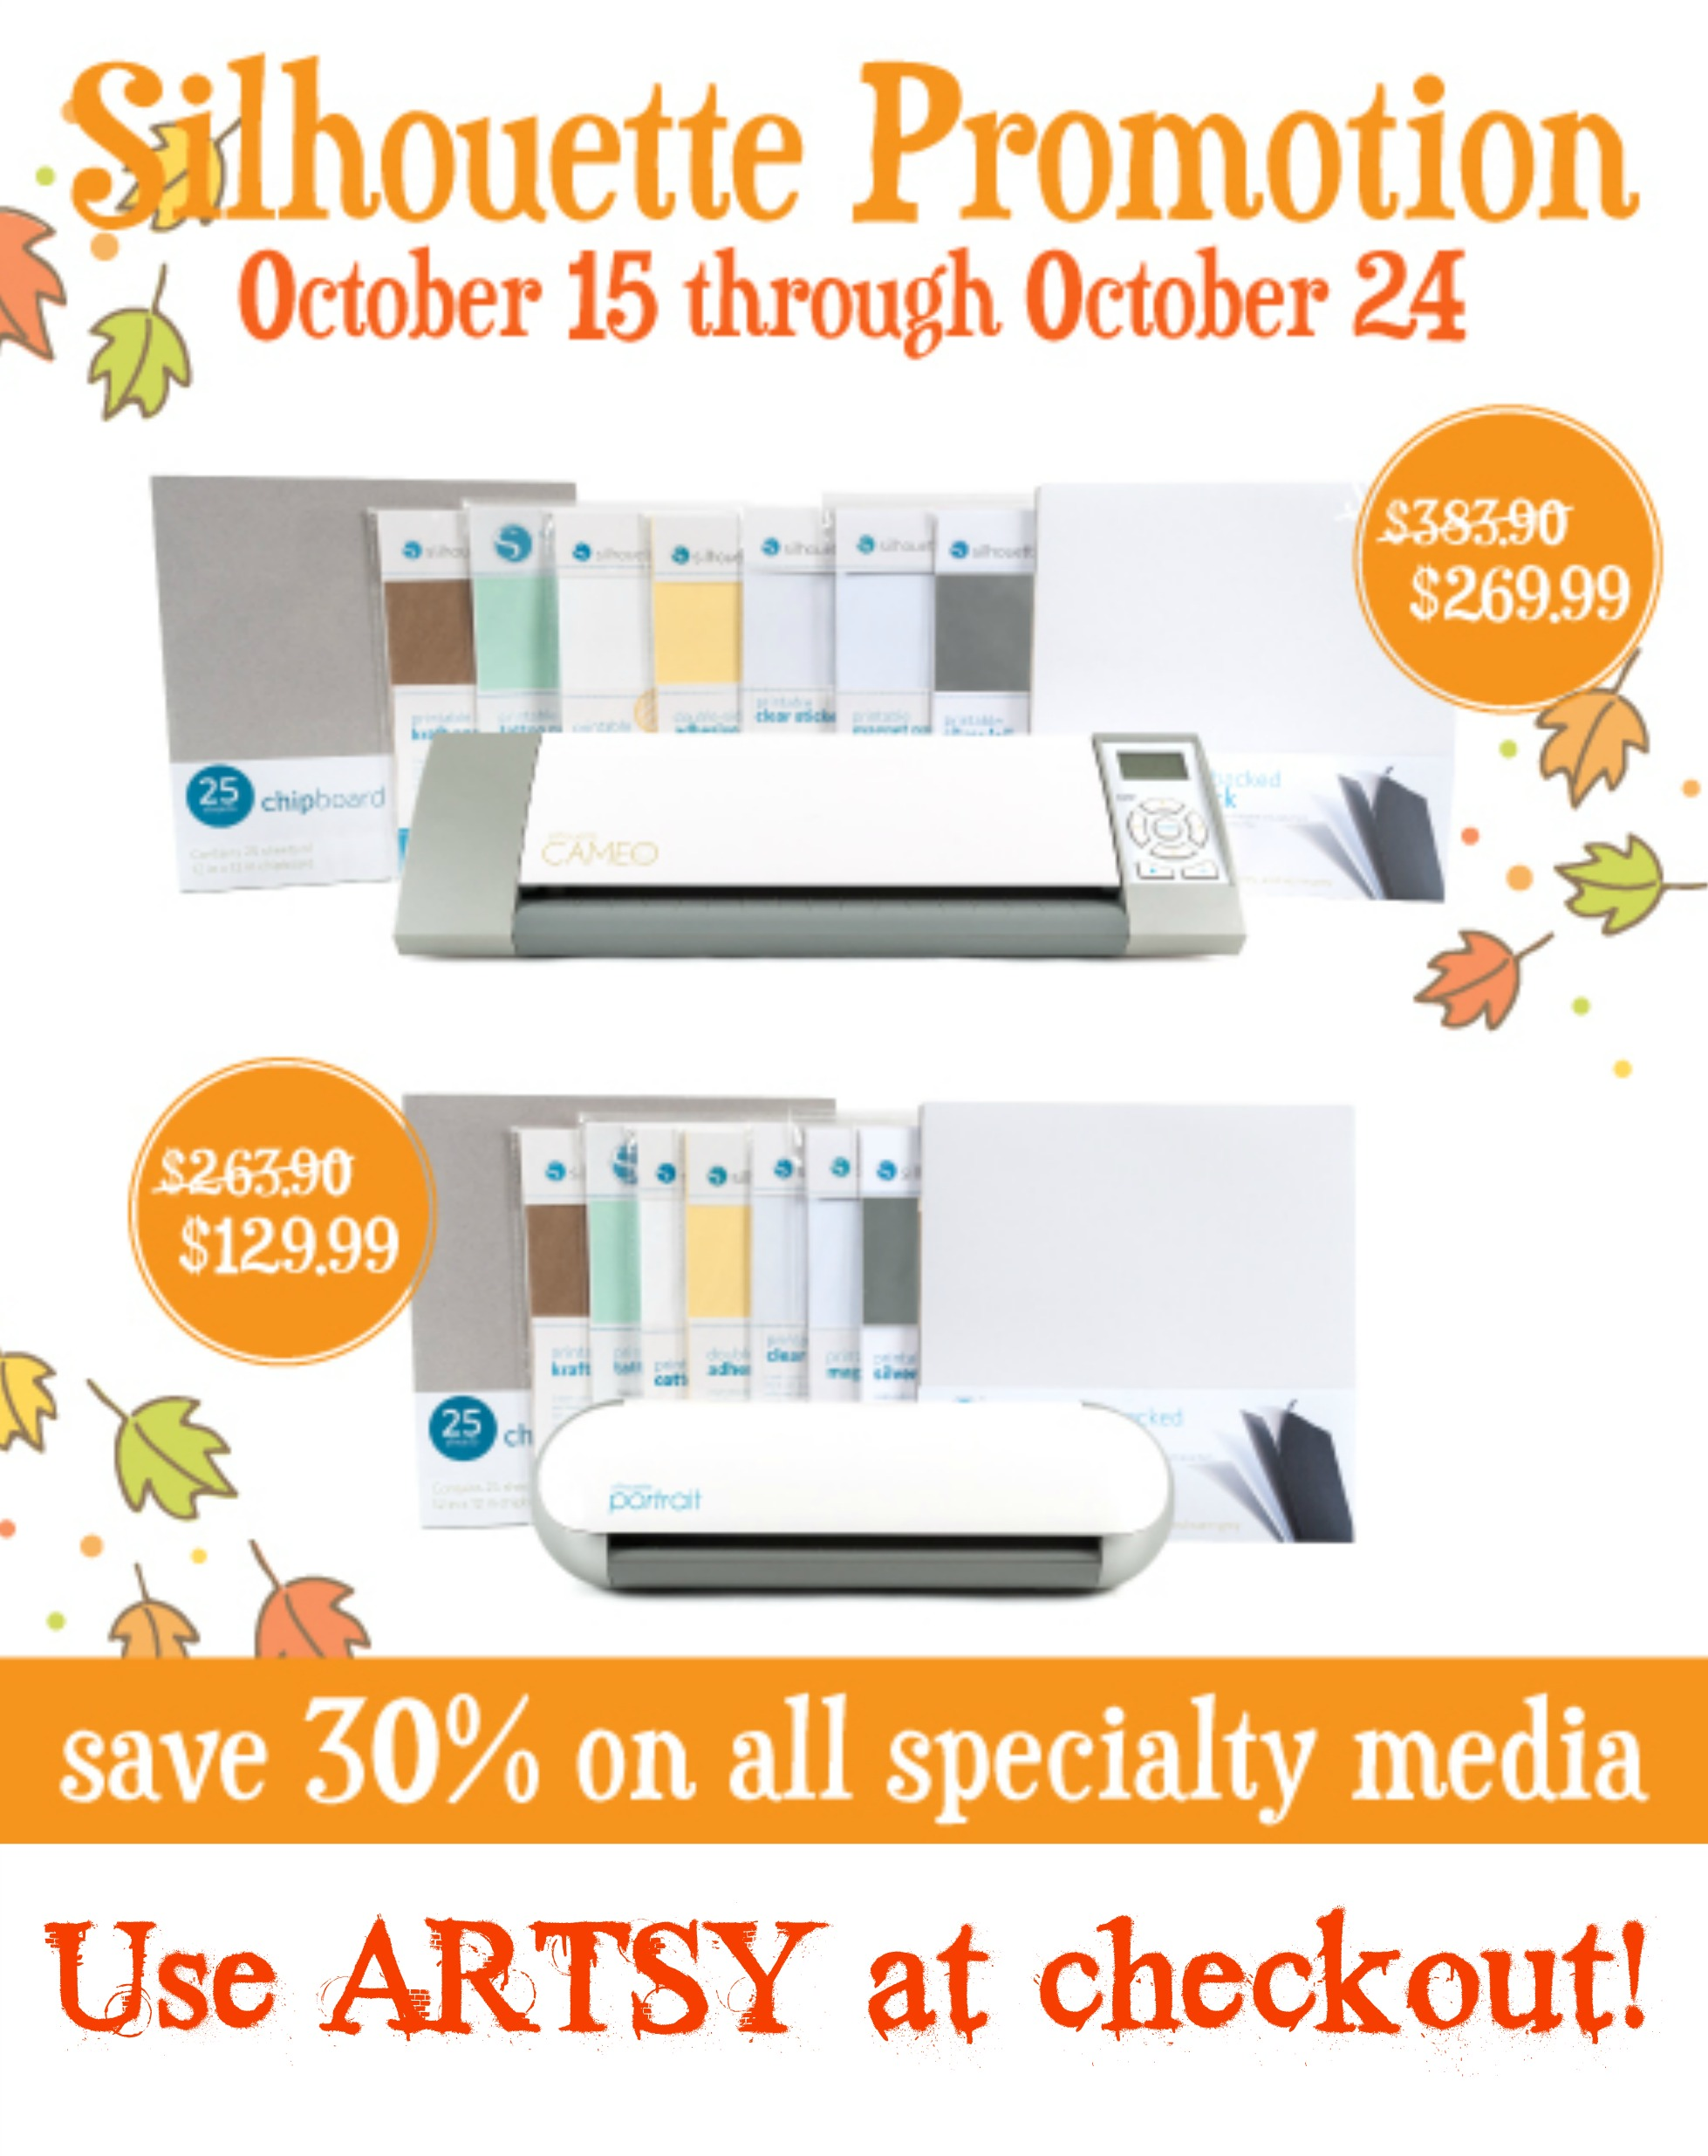 Silhouette Specialty Media Promotion!